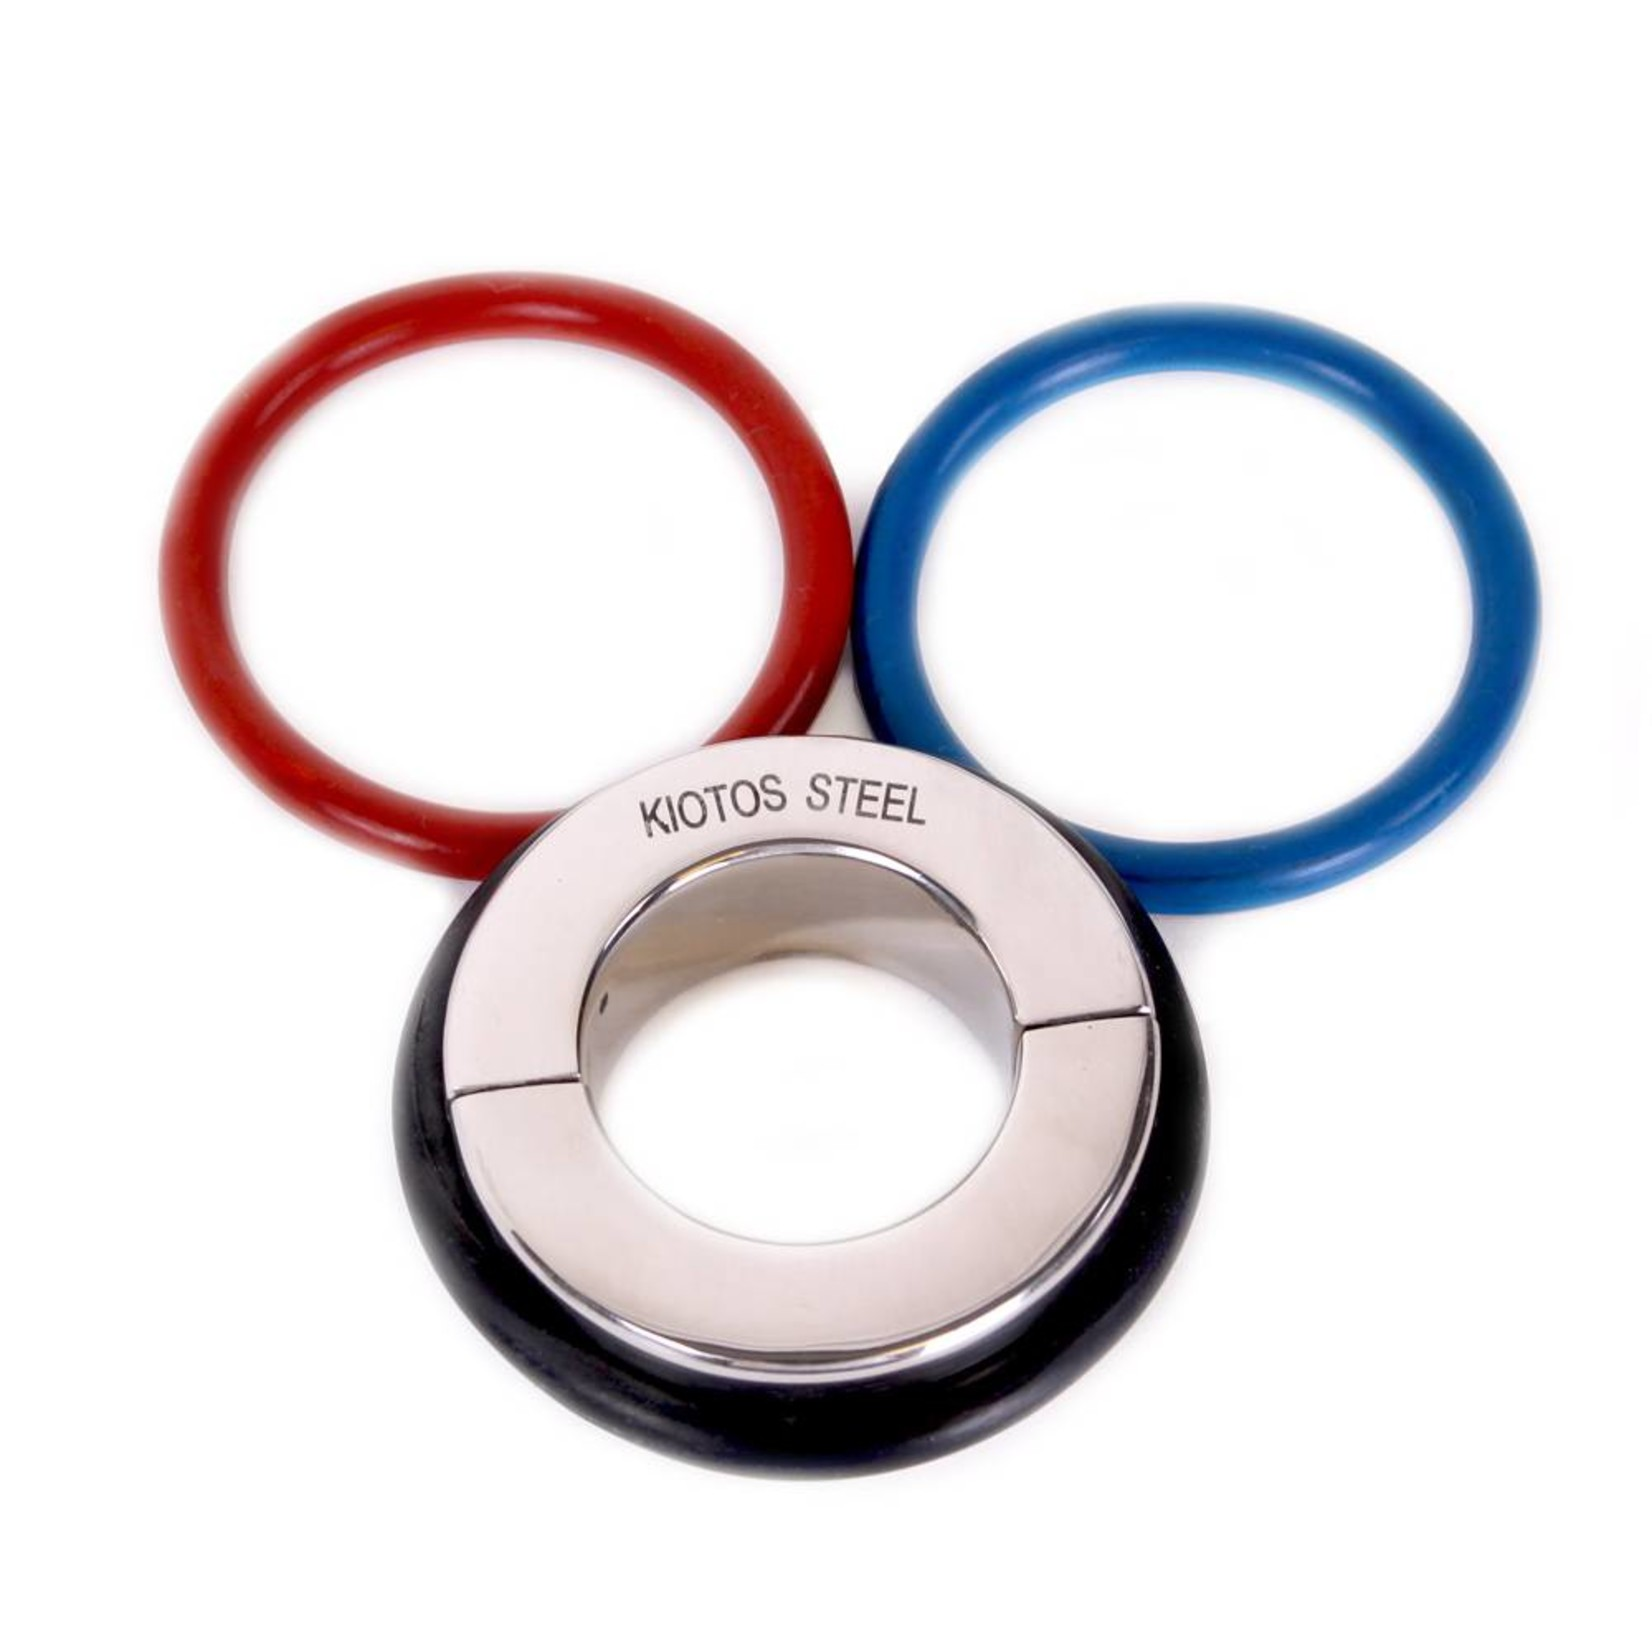 KIOTOS Steel Ball Stretcher 35 mm - With 3 Rubber Rings (Black, Red & Blue)